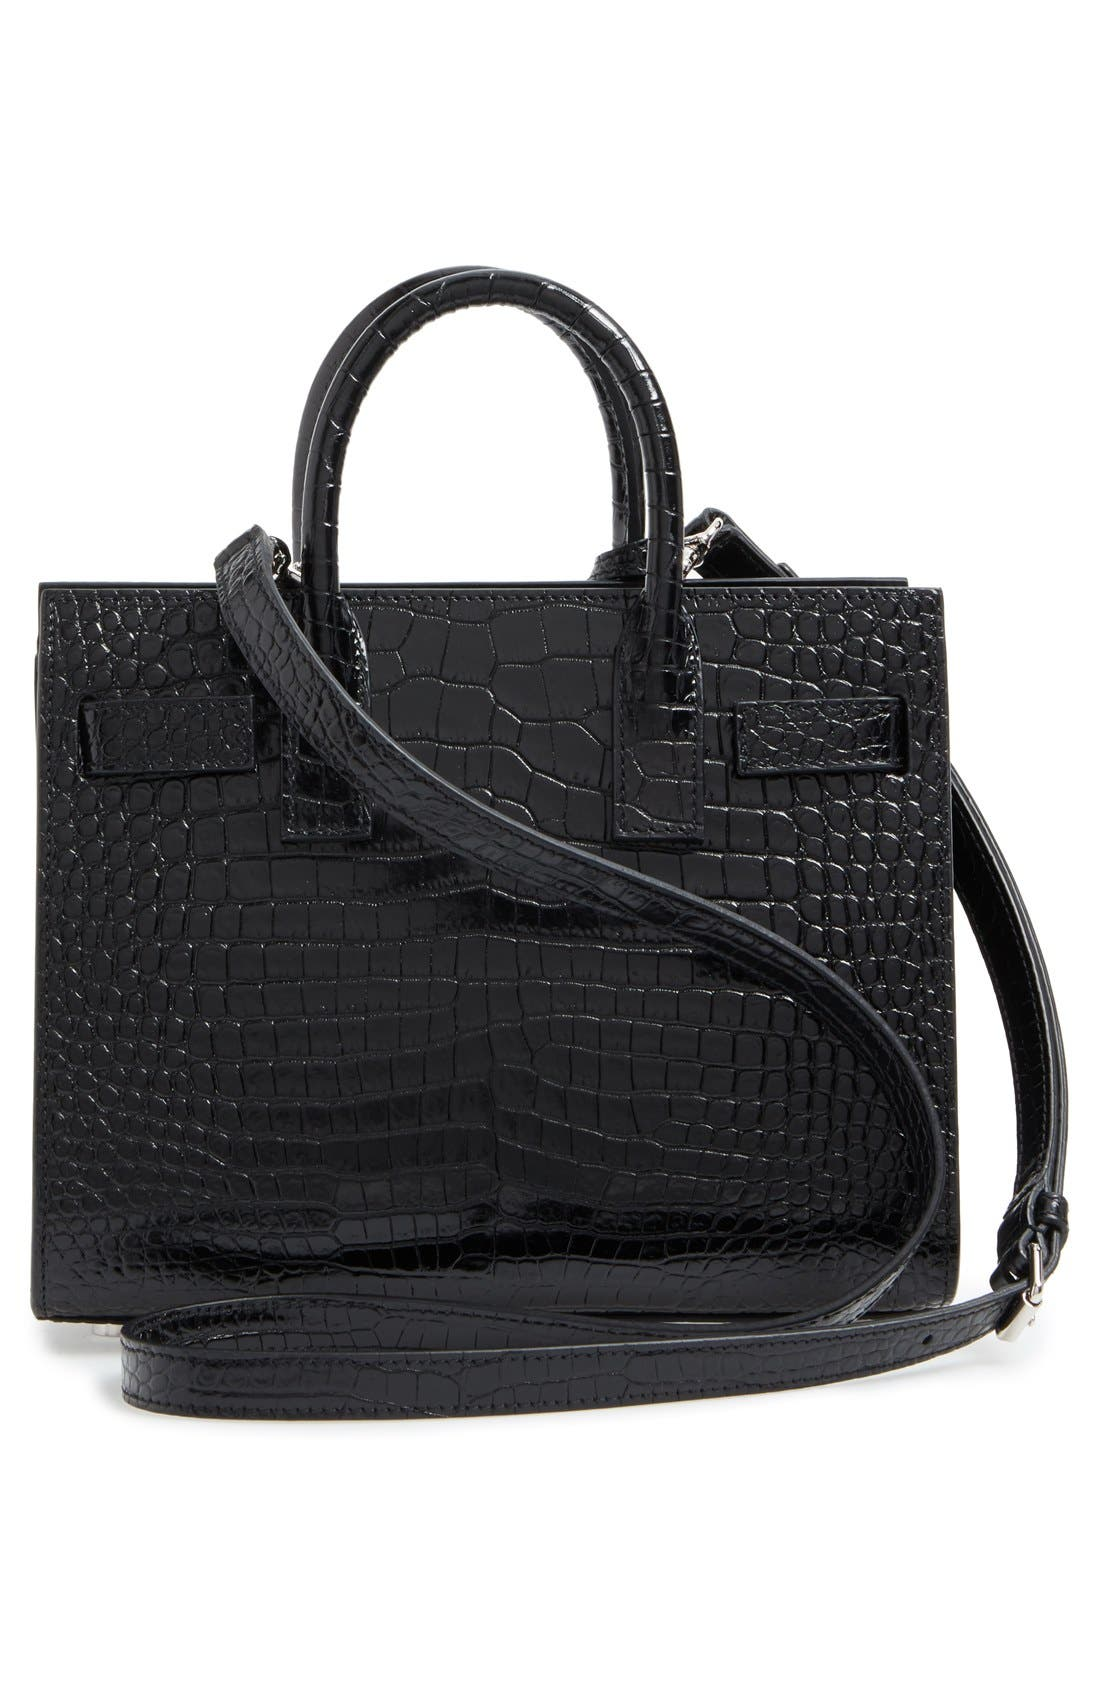 Alternate Image 2  - Saint Laurent Nano Sac de Jour Croc Embossed Leather Tote